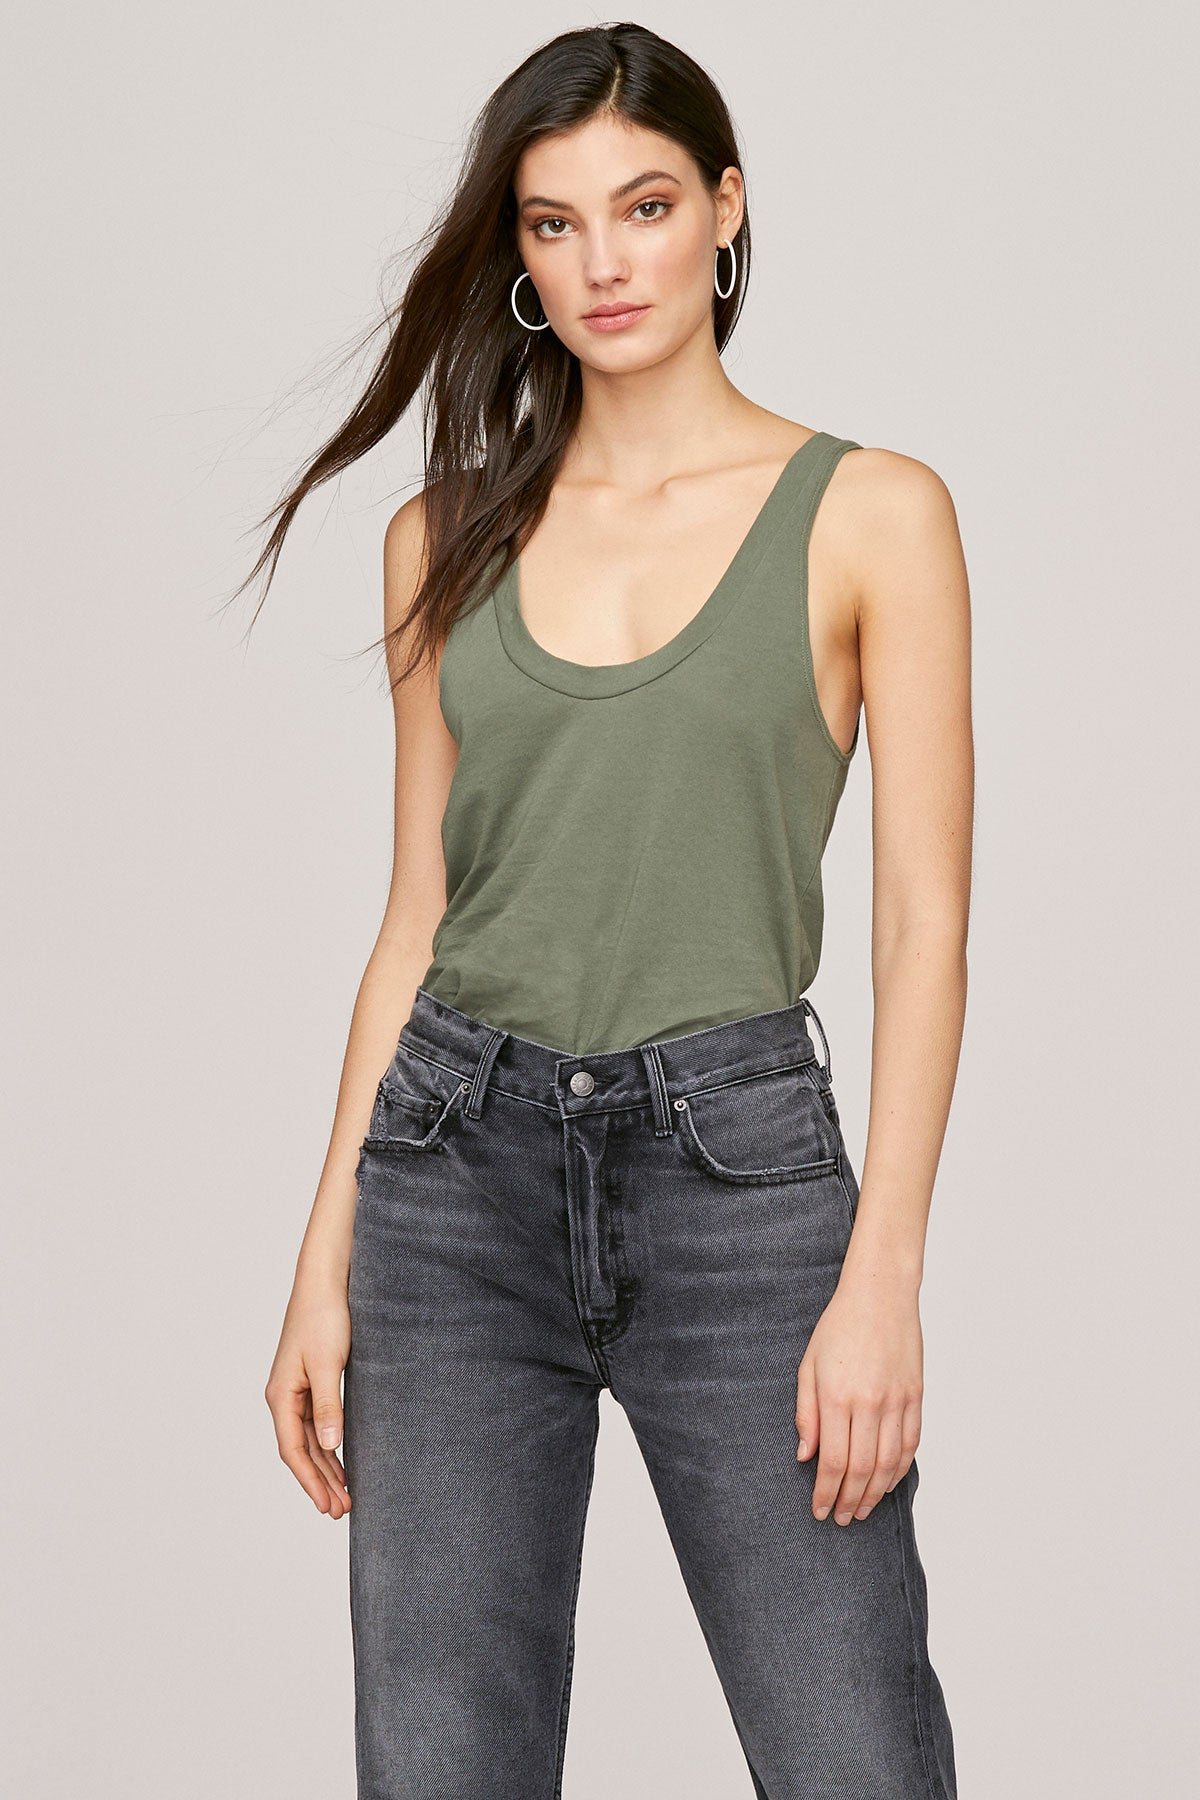 LNA Military Green Tanner Scoop Neck Tank